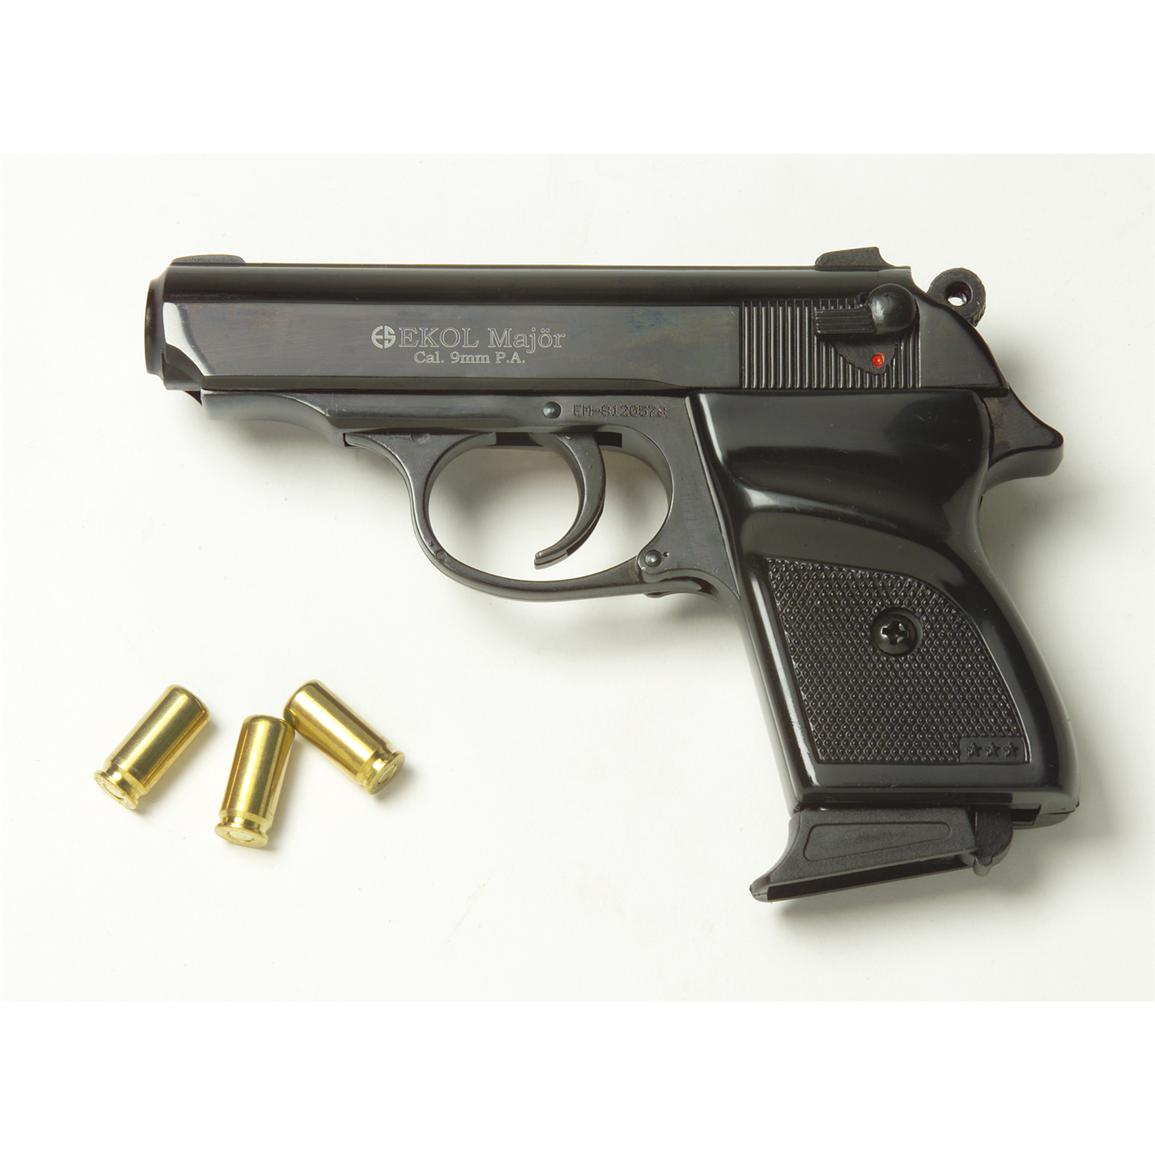 Blank-firing Major 9 mm Semi-Automatic Pistol, Black